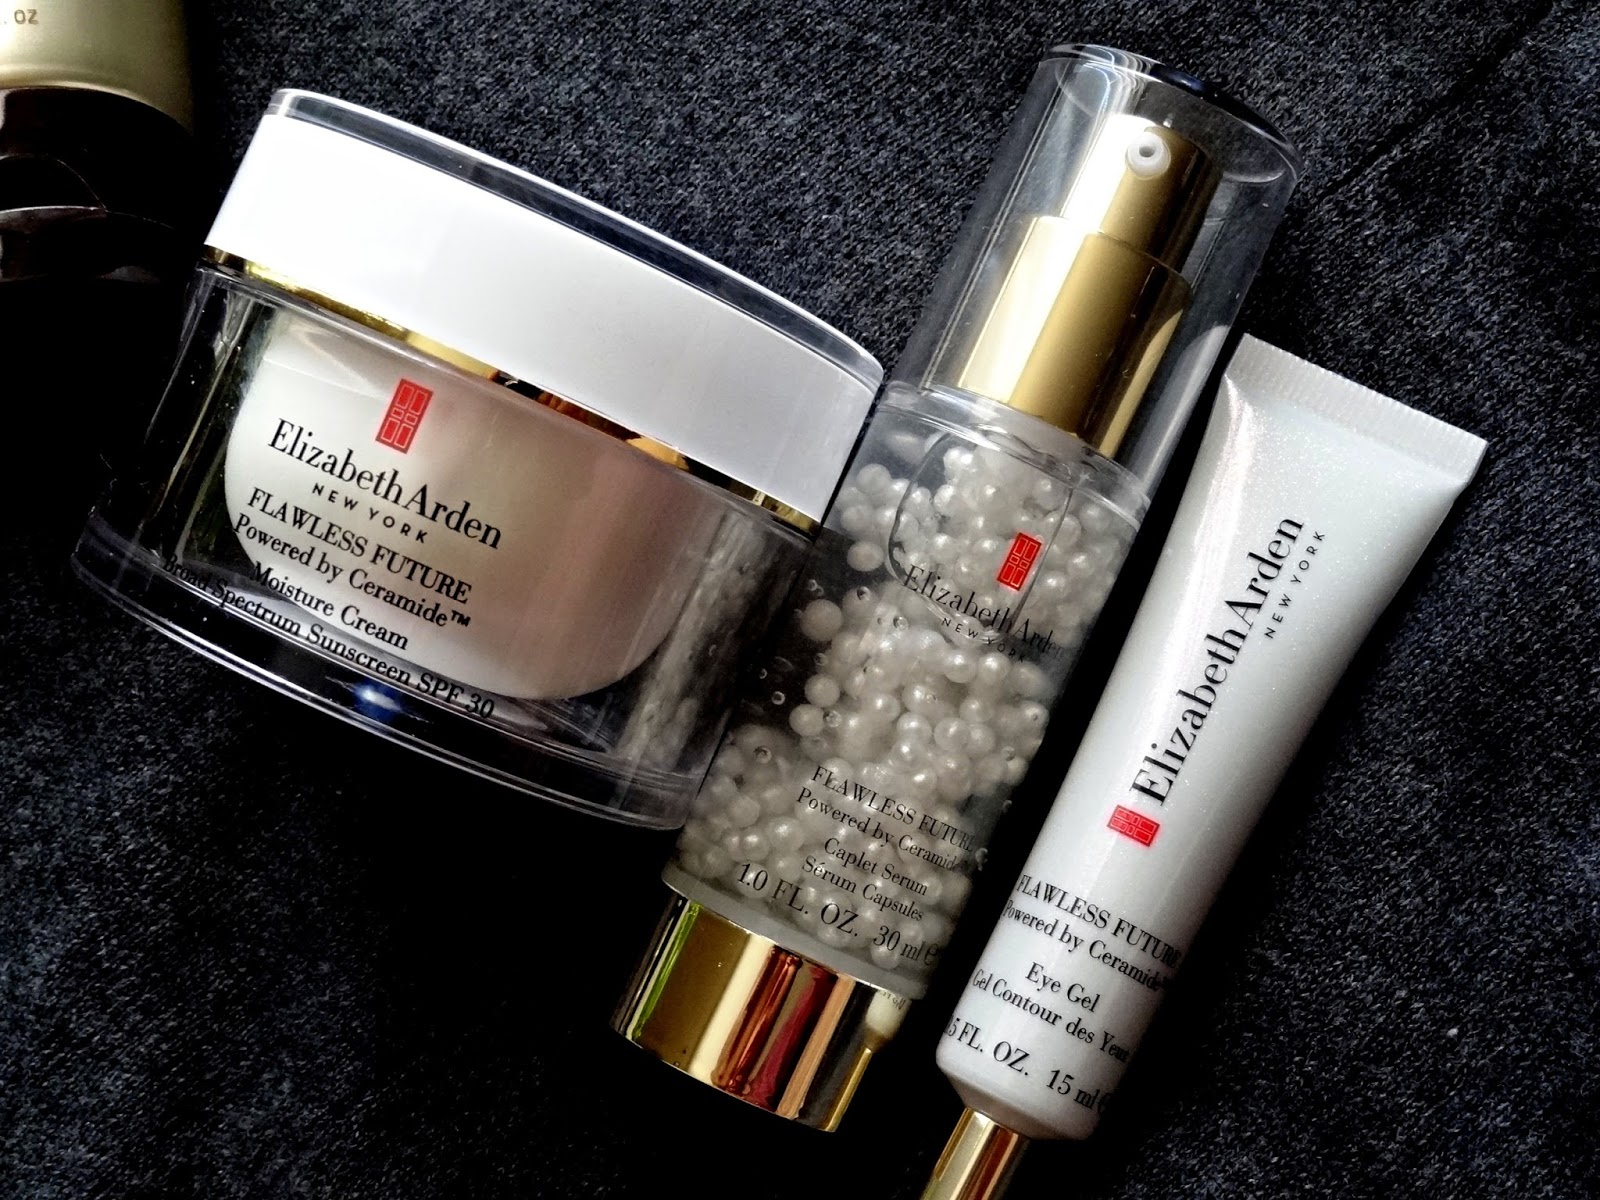 Elizabeth Arden Flawless Future Powered by Ceramide Day Cream, Caplet Serum and Eye Gel Review, Photos